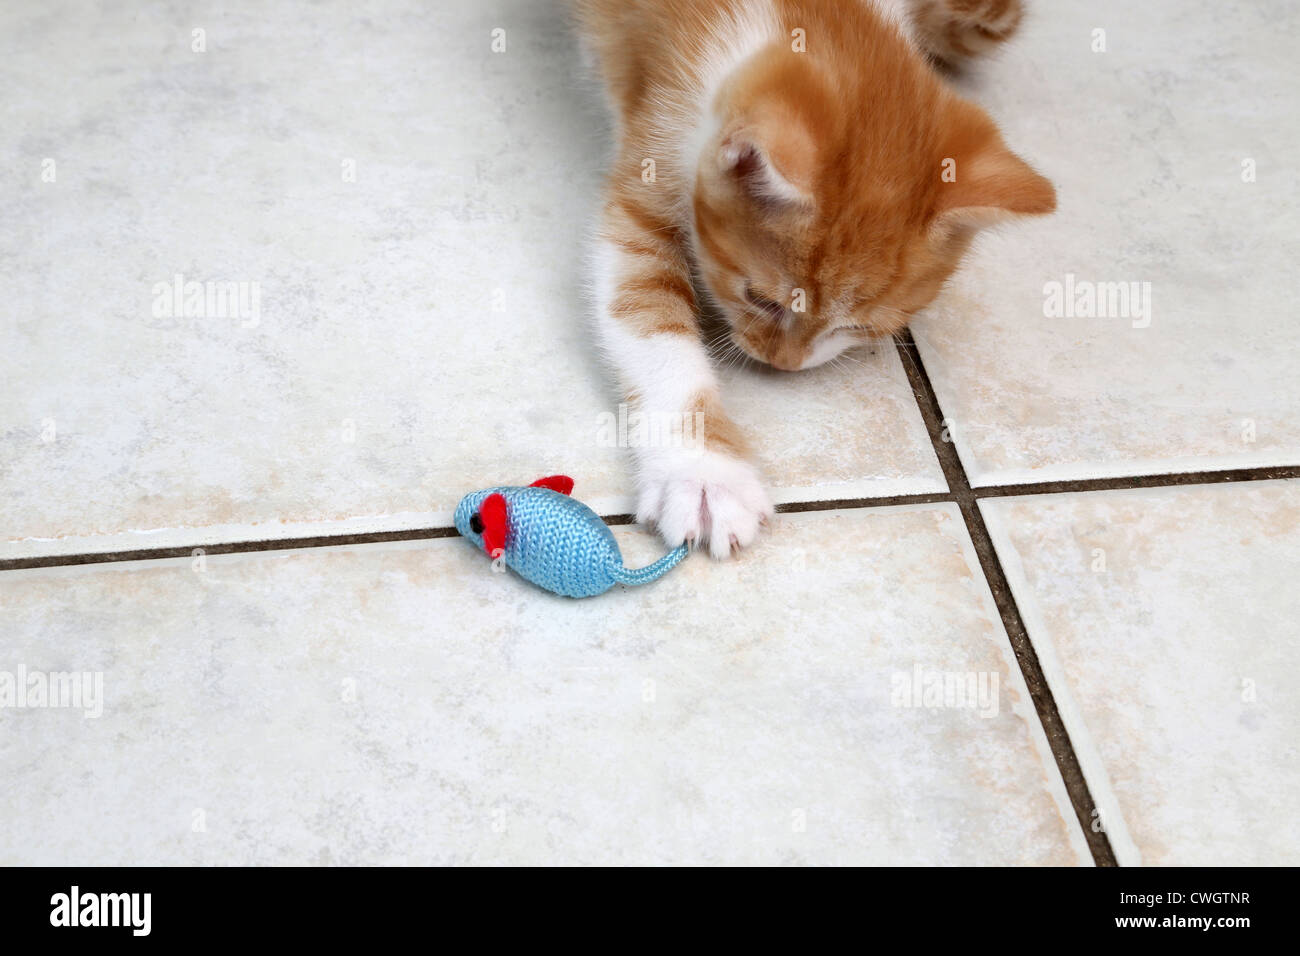 Ginger And White Kitten Playing With A Toy Mouse Stock Photo